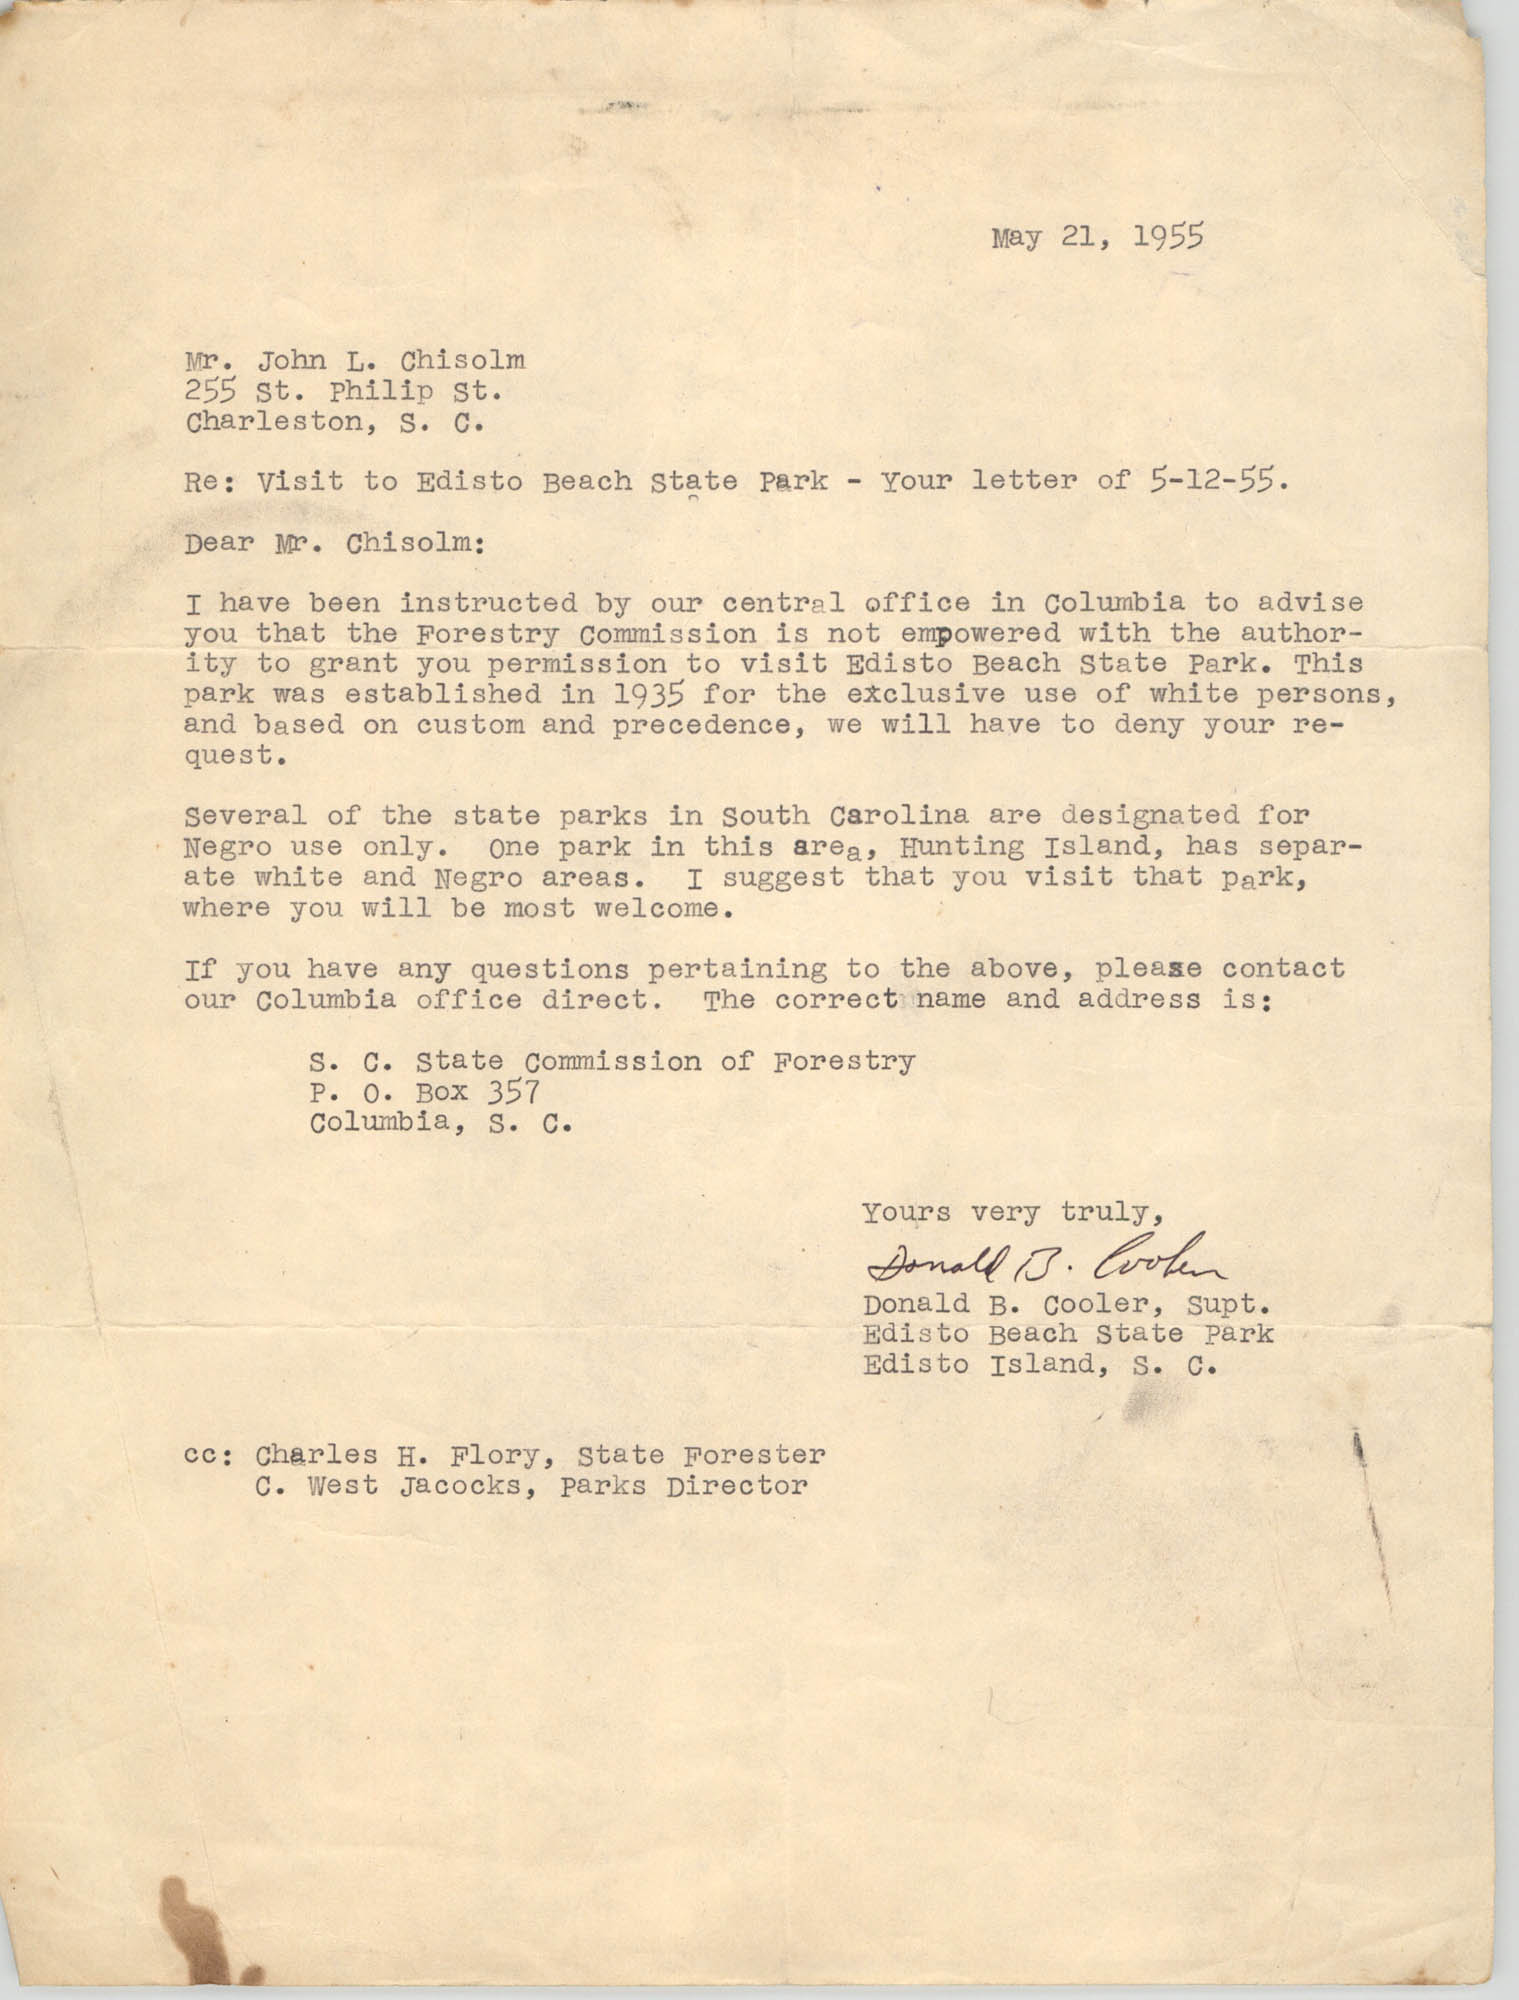 Letter from Donald B. Cooler to John L. Chisolm, May 21, 1955